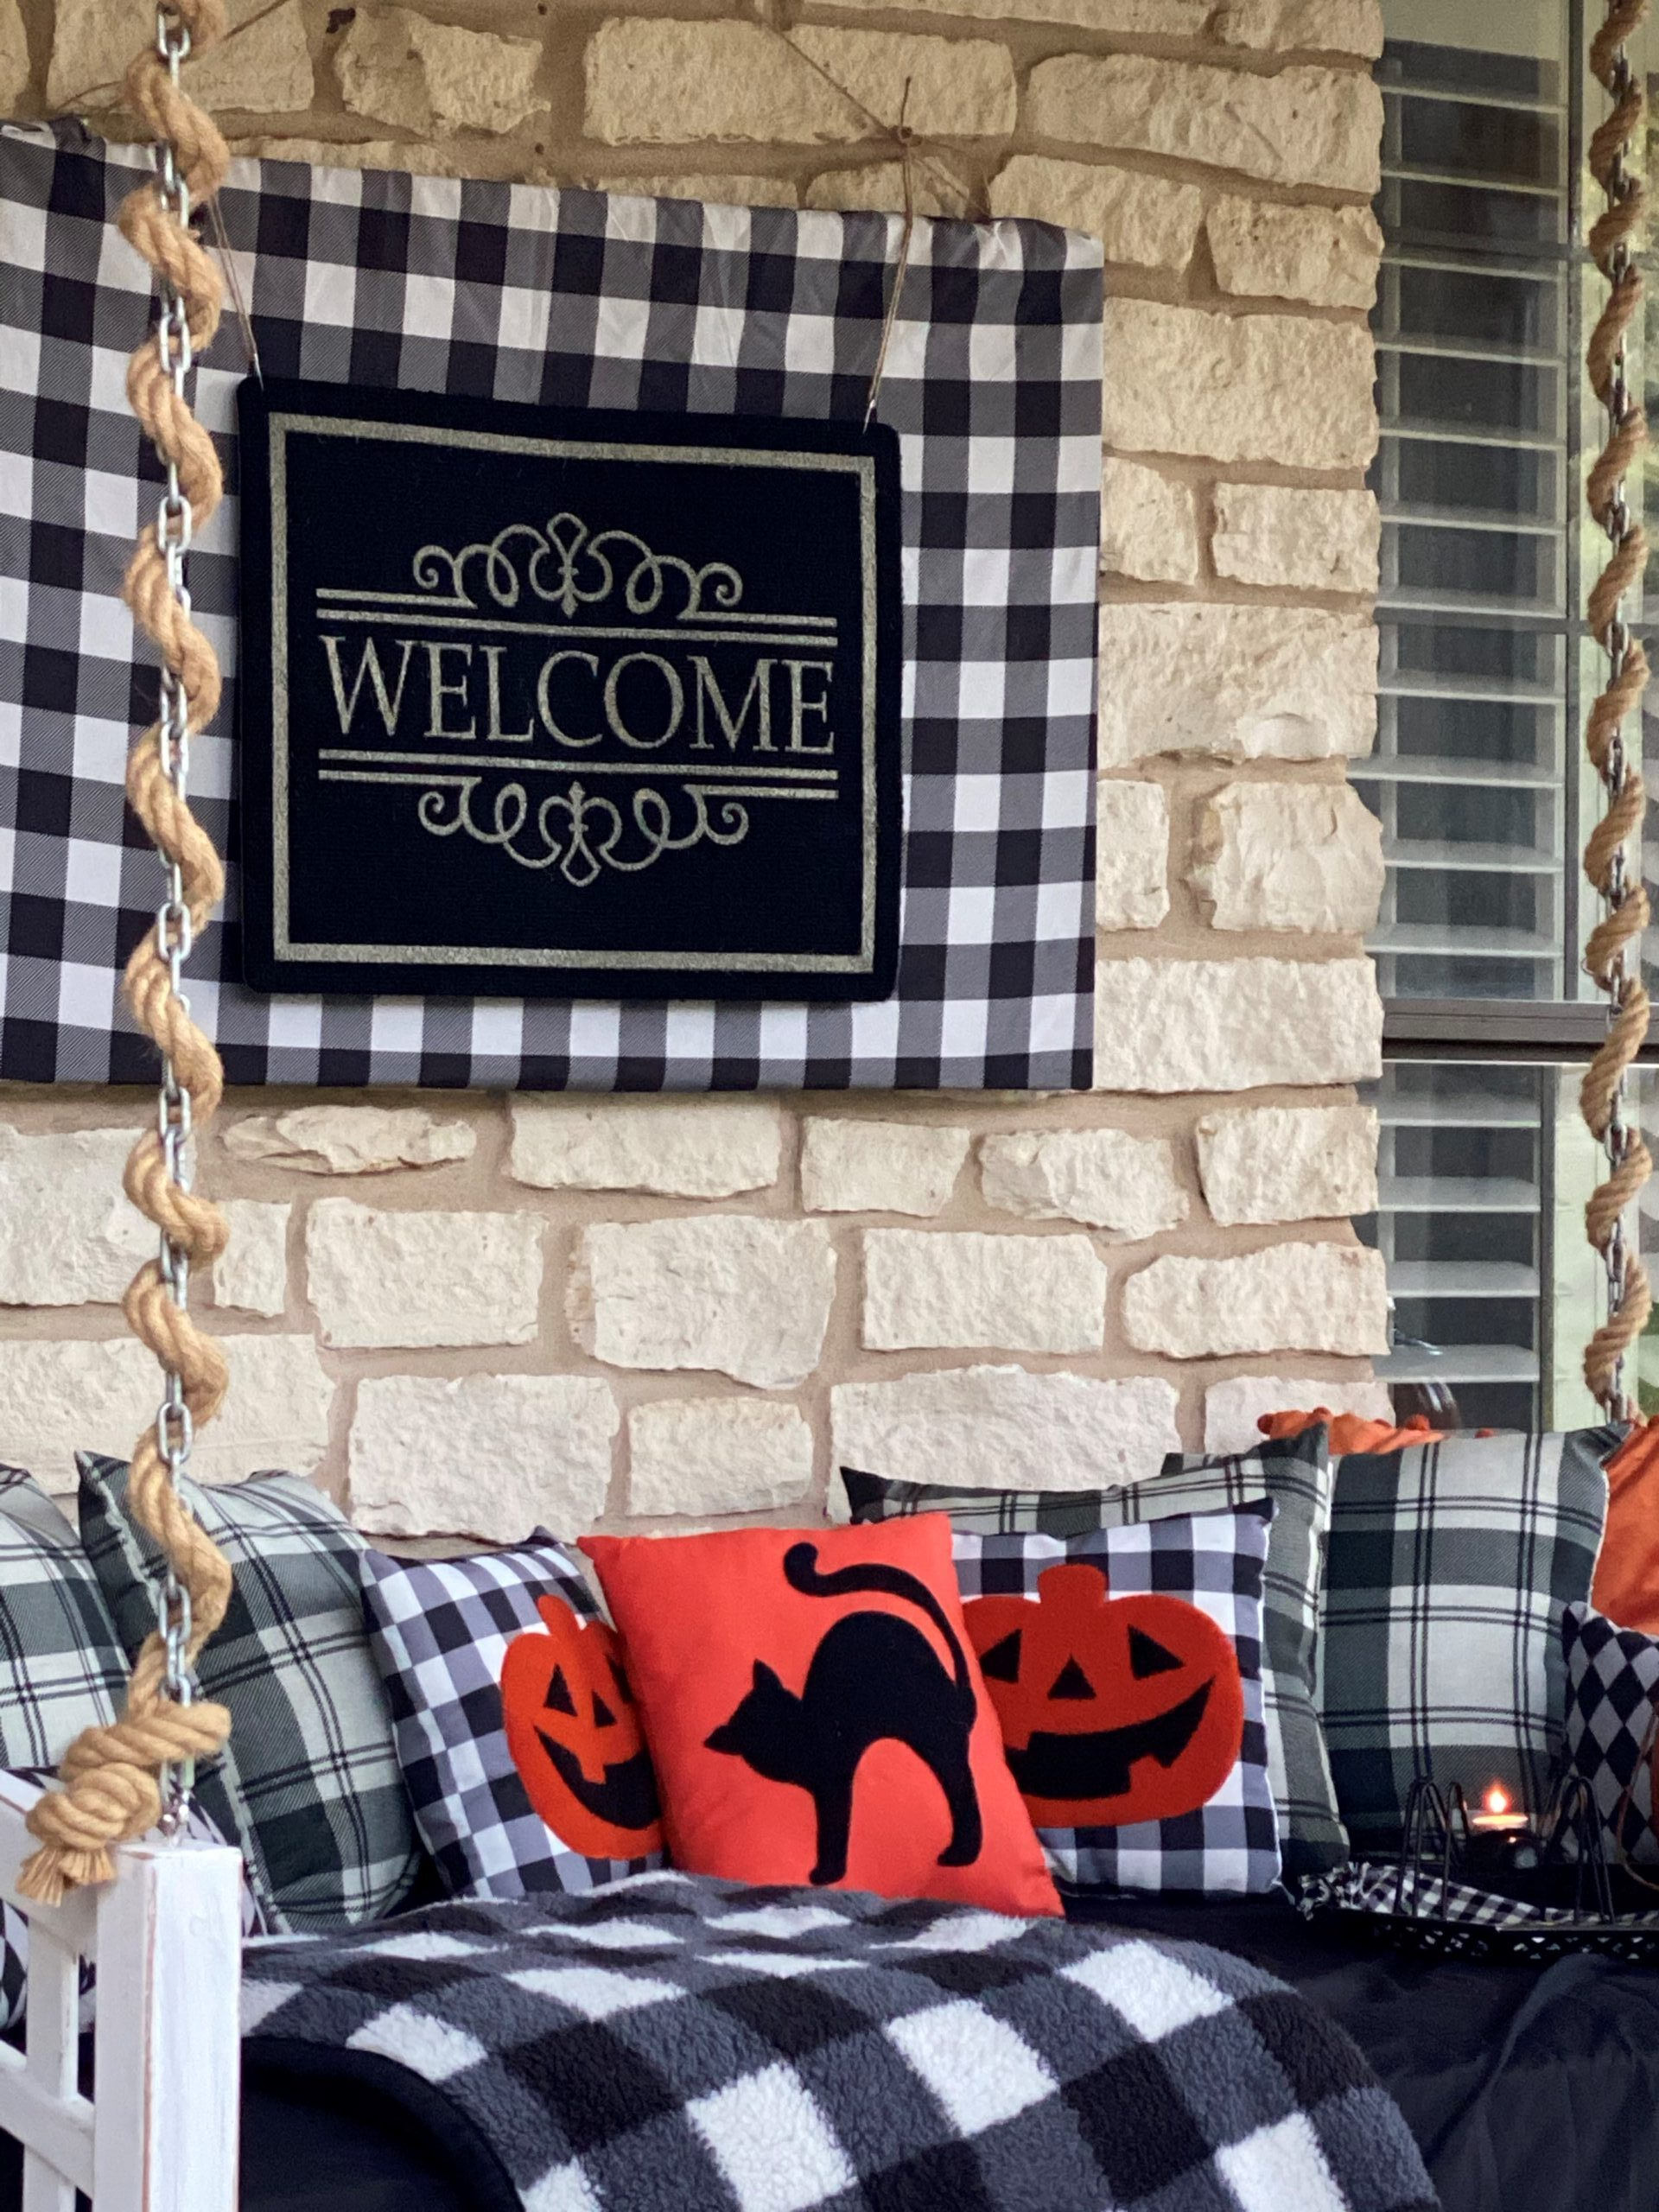 Halloween Front Porch Decorations, Vintage Rustic Front Porch, DIY Welcome Sign, Black and White Buffalo Check, Halloween Pillows